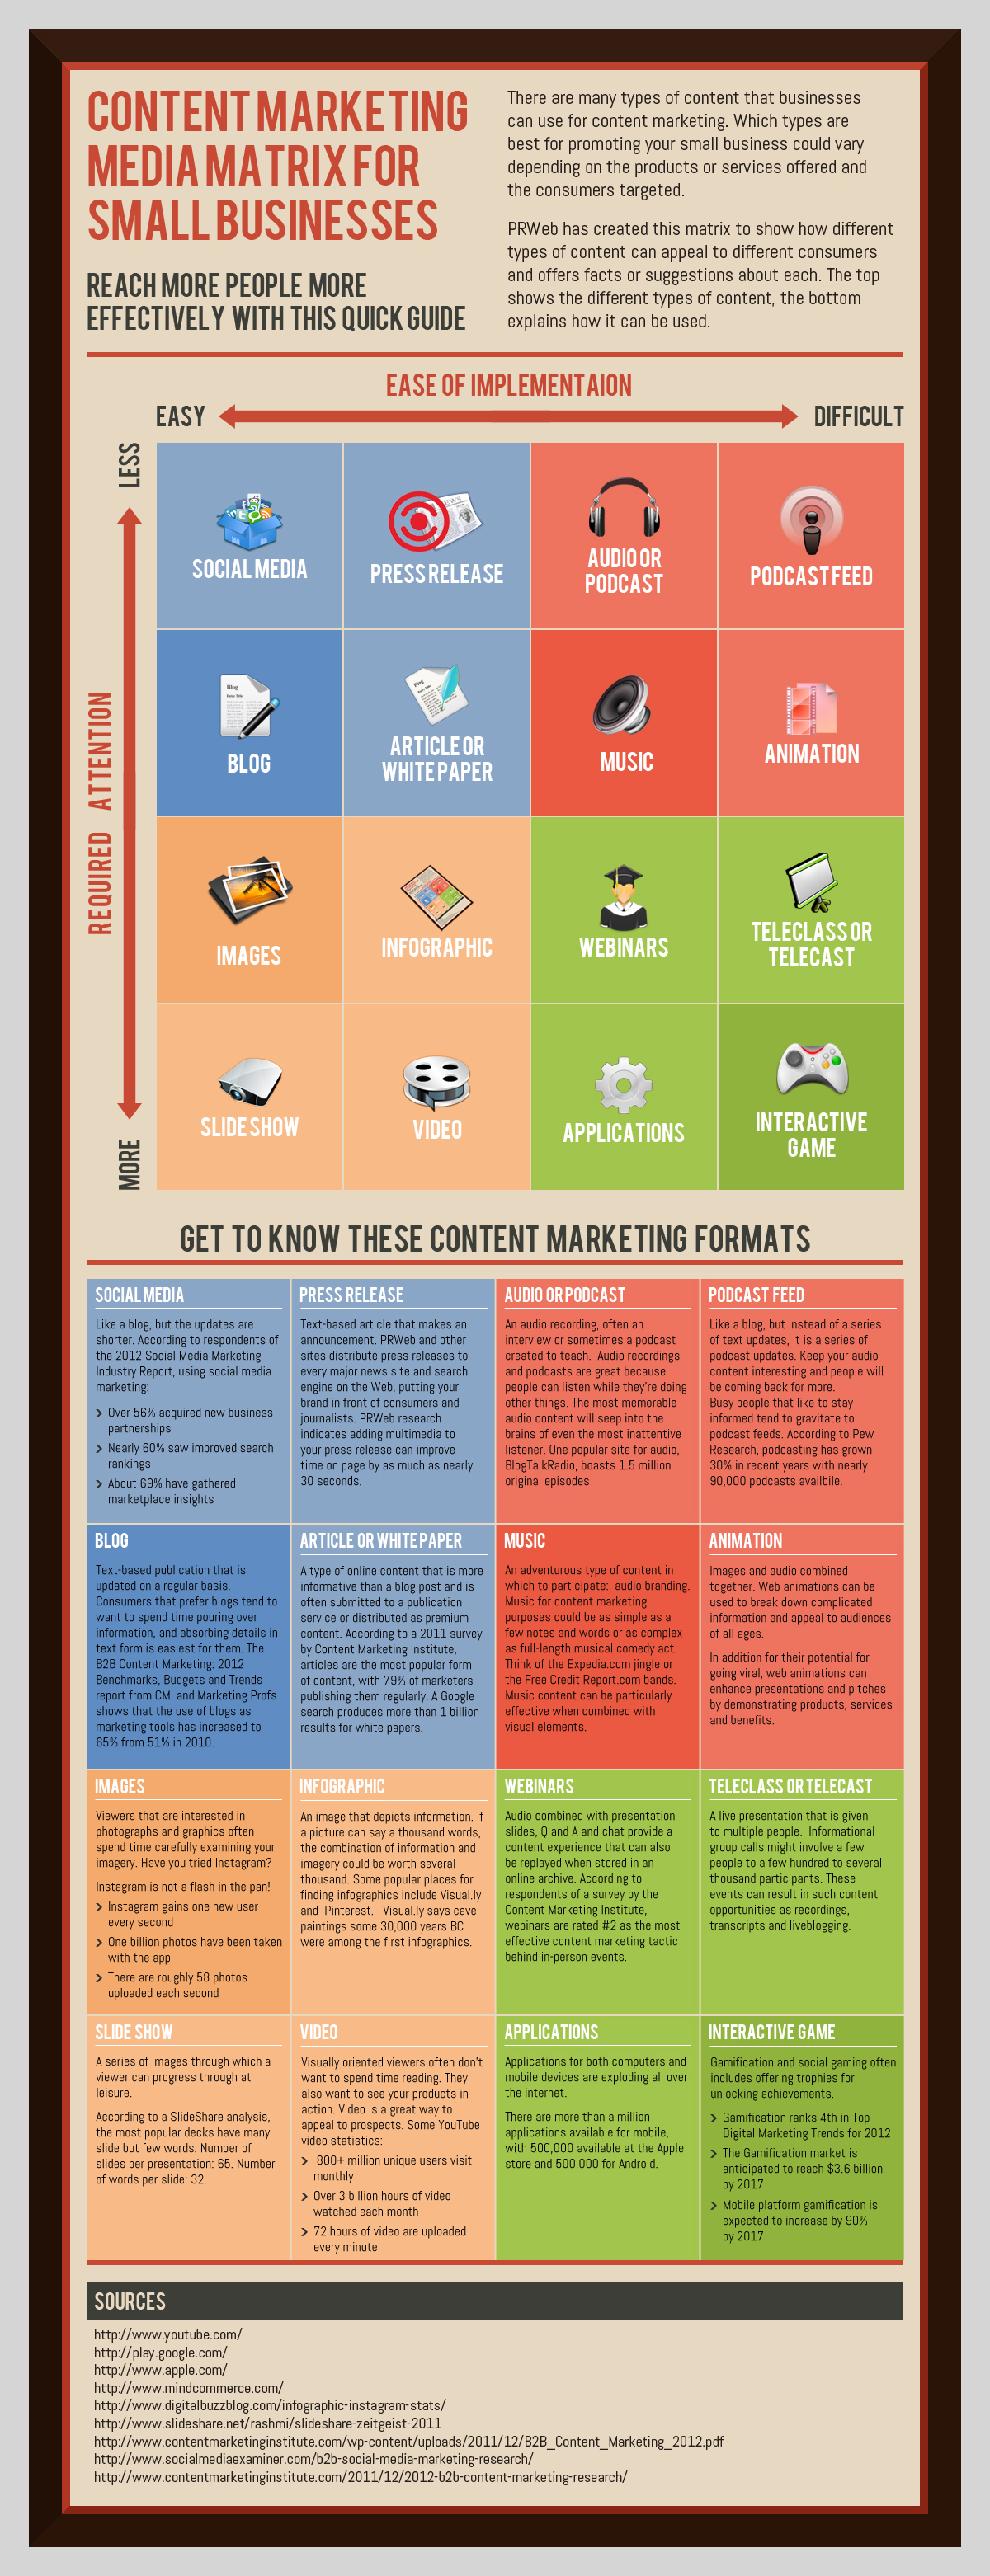 infographic-the-content-marketing-matrix-for-small-businesses_50adcf1d75720